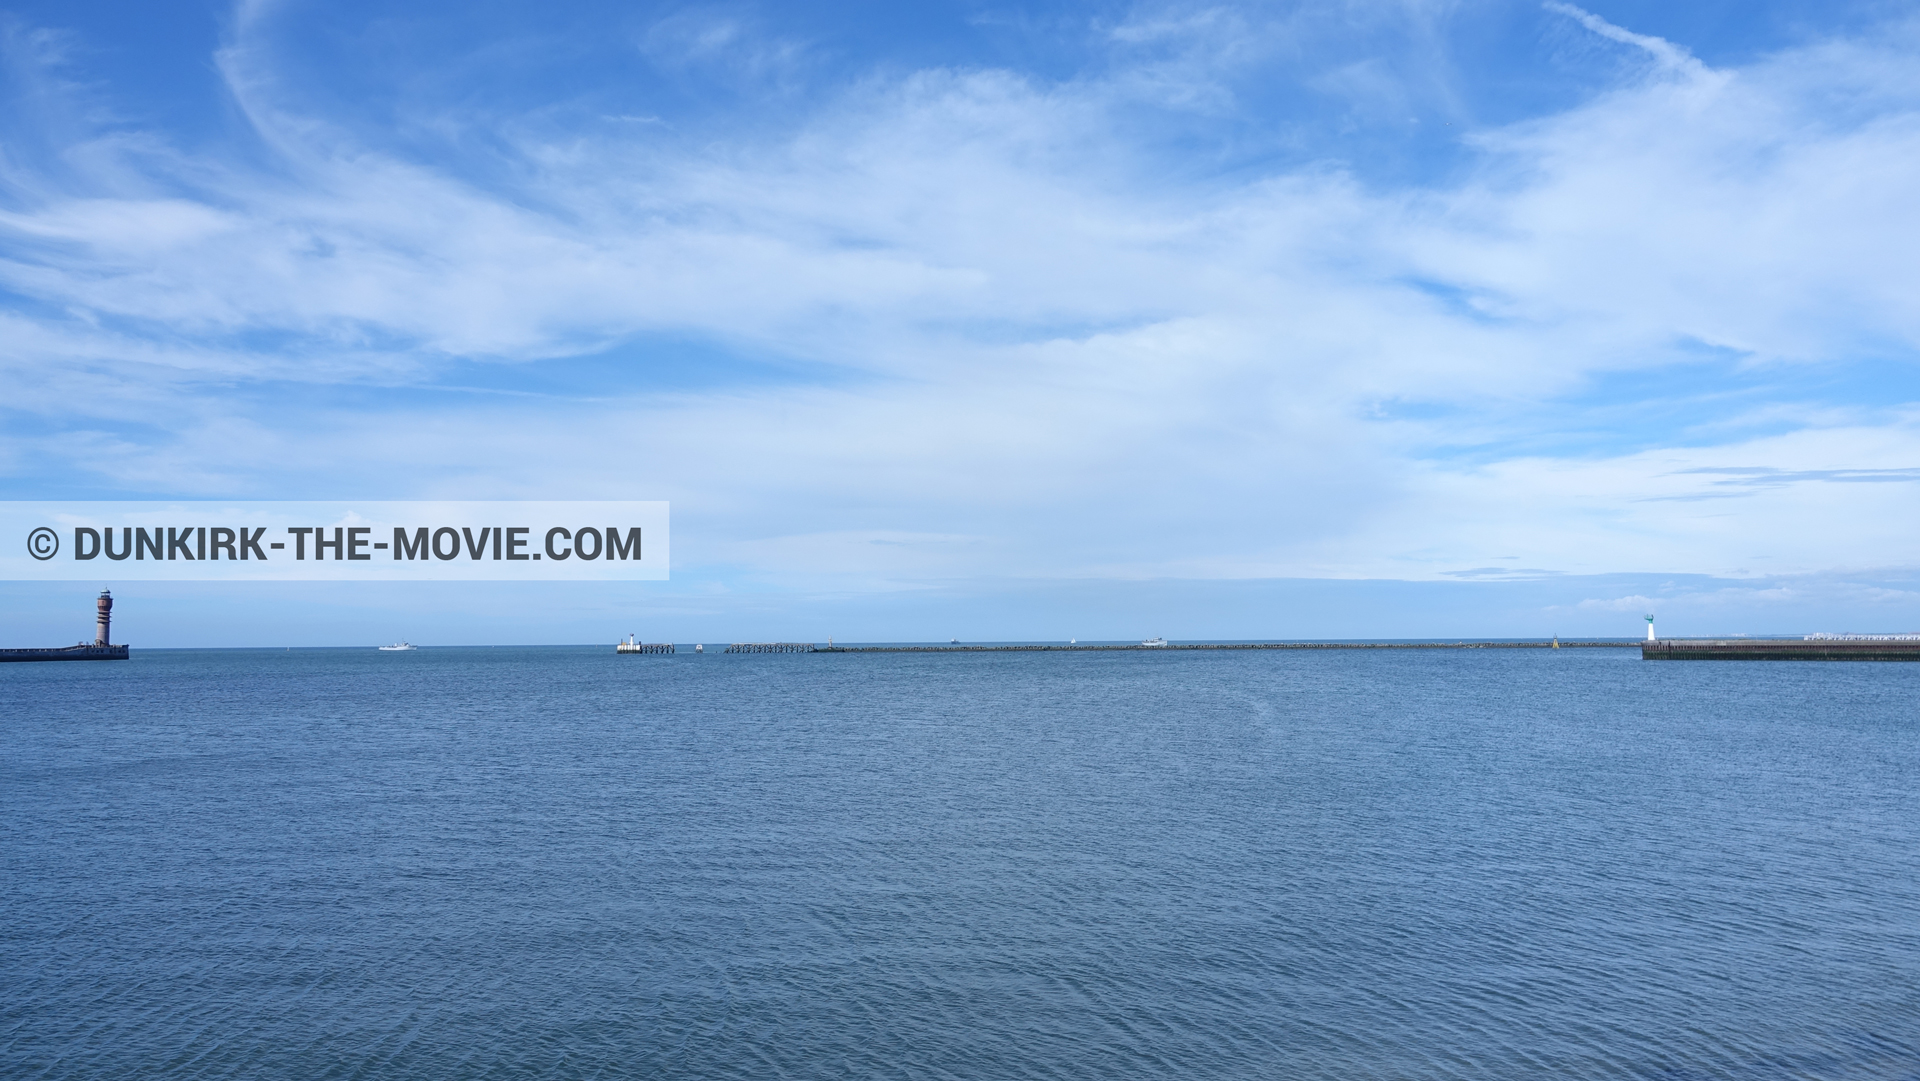 Picture with boat, cloudy sky, calm sea, St Pol sur Mer lighthouse,  from behind the scene of the Dunkirk movie by Nolan